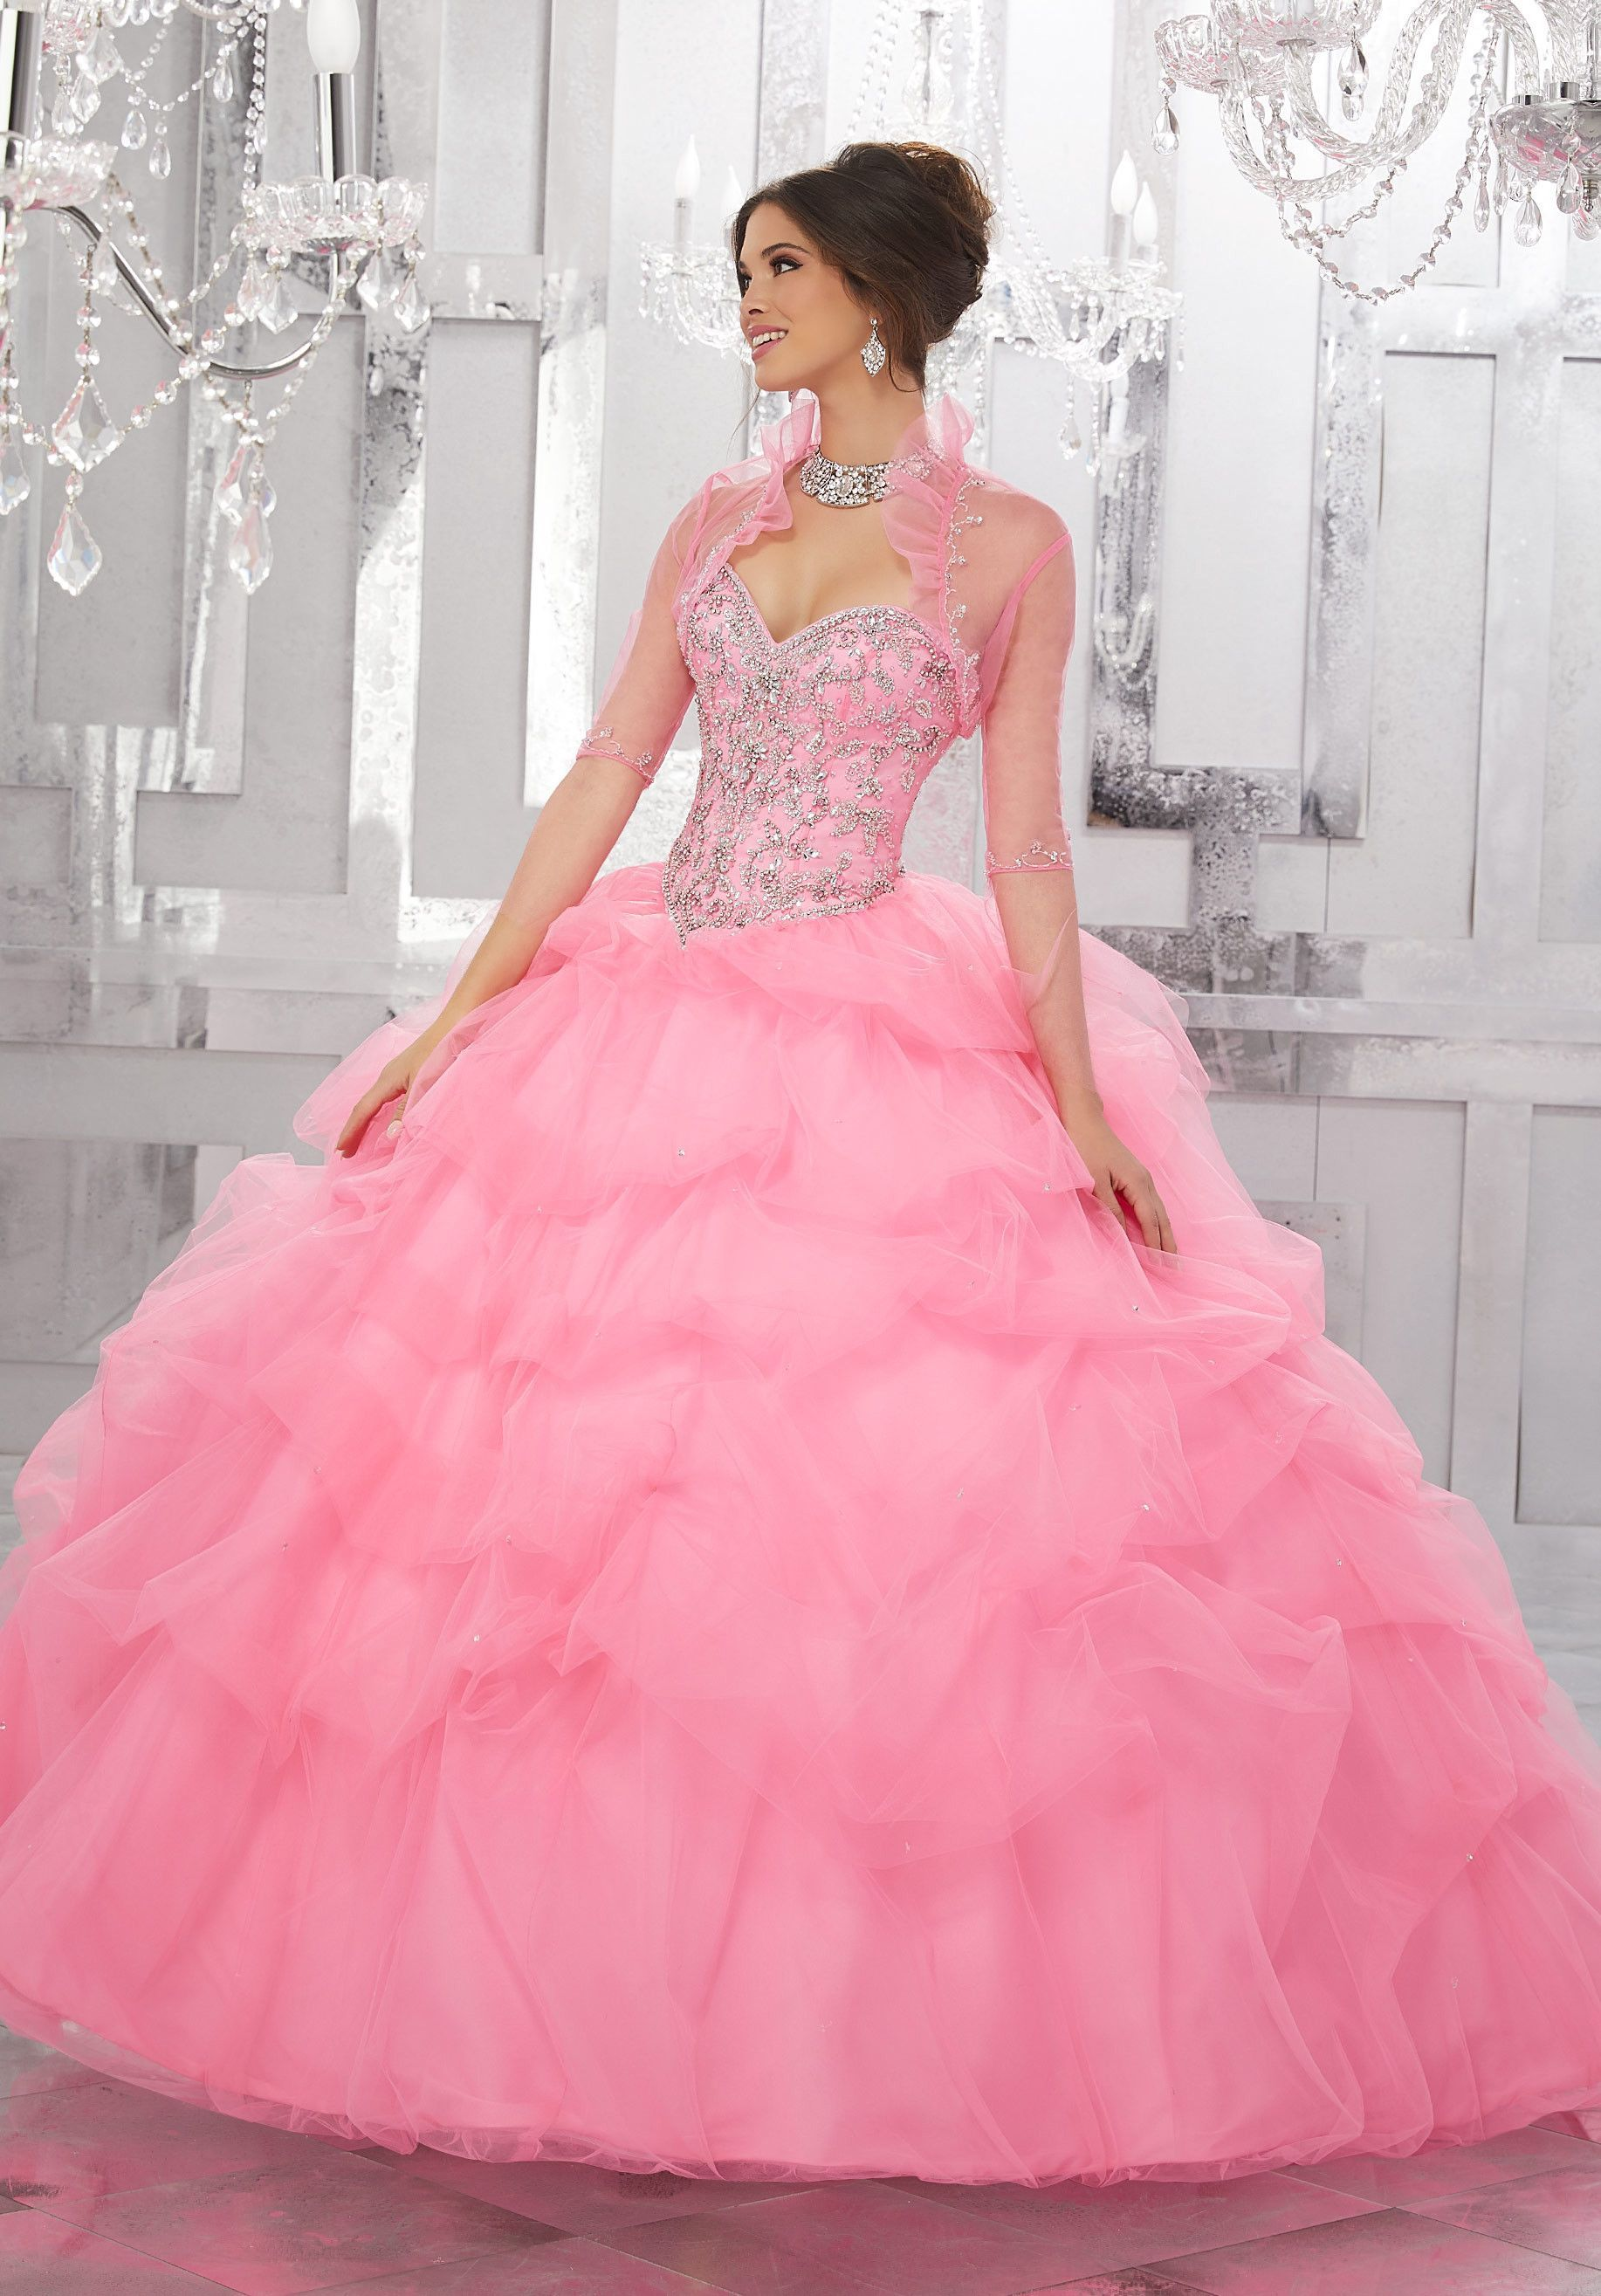 Strapless Ruffled Quinceanera Dress by Mori Lee Valencia 60025 ...